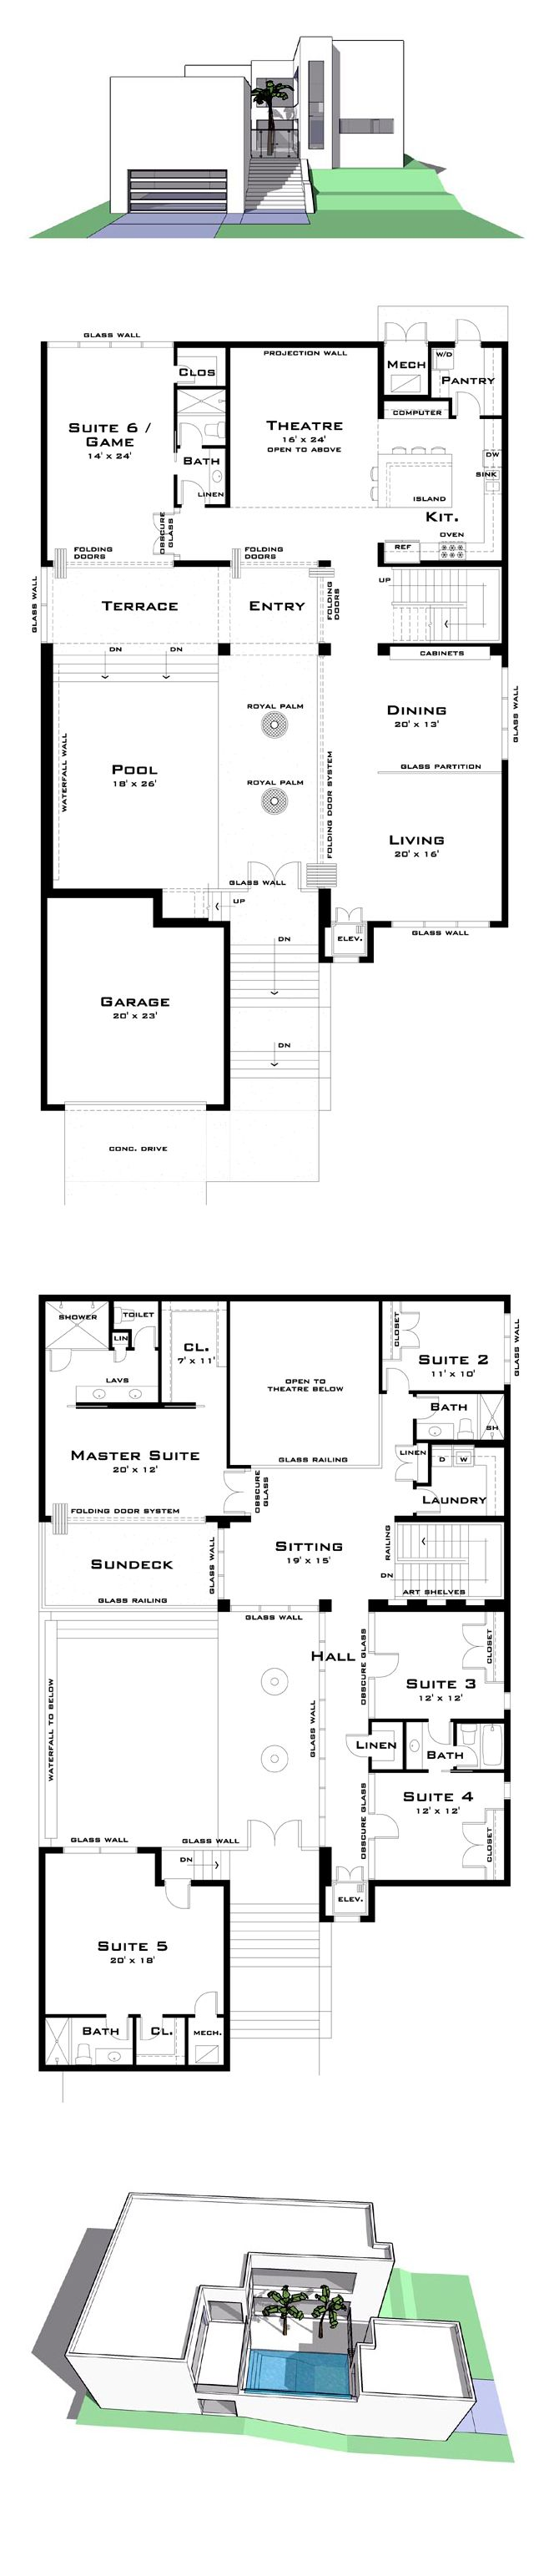 cool house plan id chp 39626 total living area 4757 sq ft 6 cool house plan id chp 39626 total living area 4757 sq